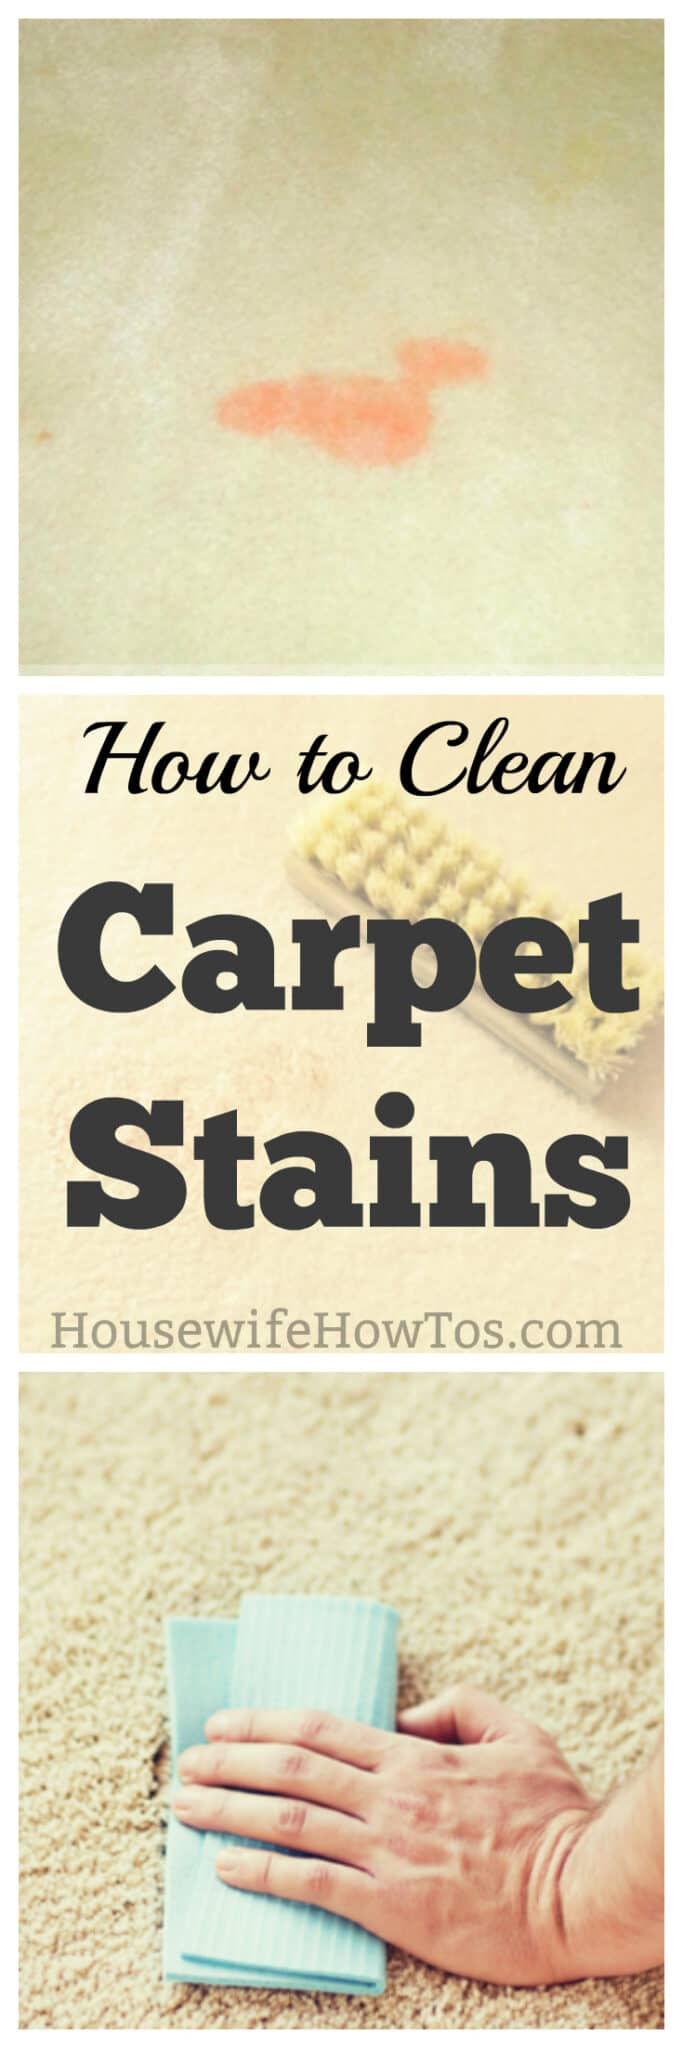 How To Clean Carpet Stains O Housewife How To39sr